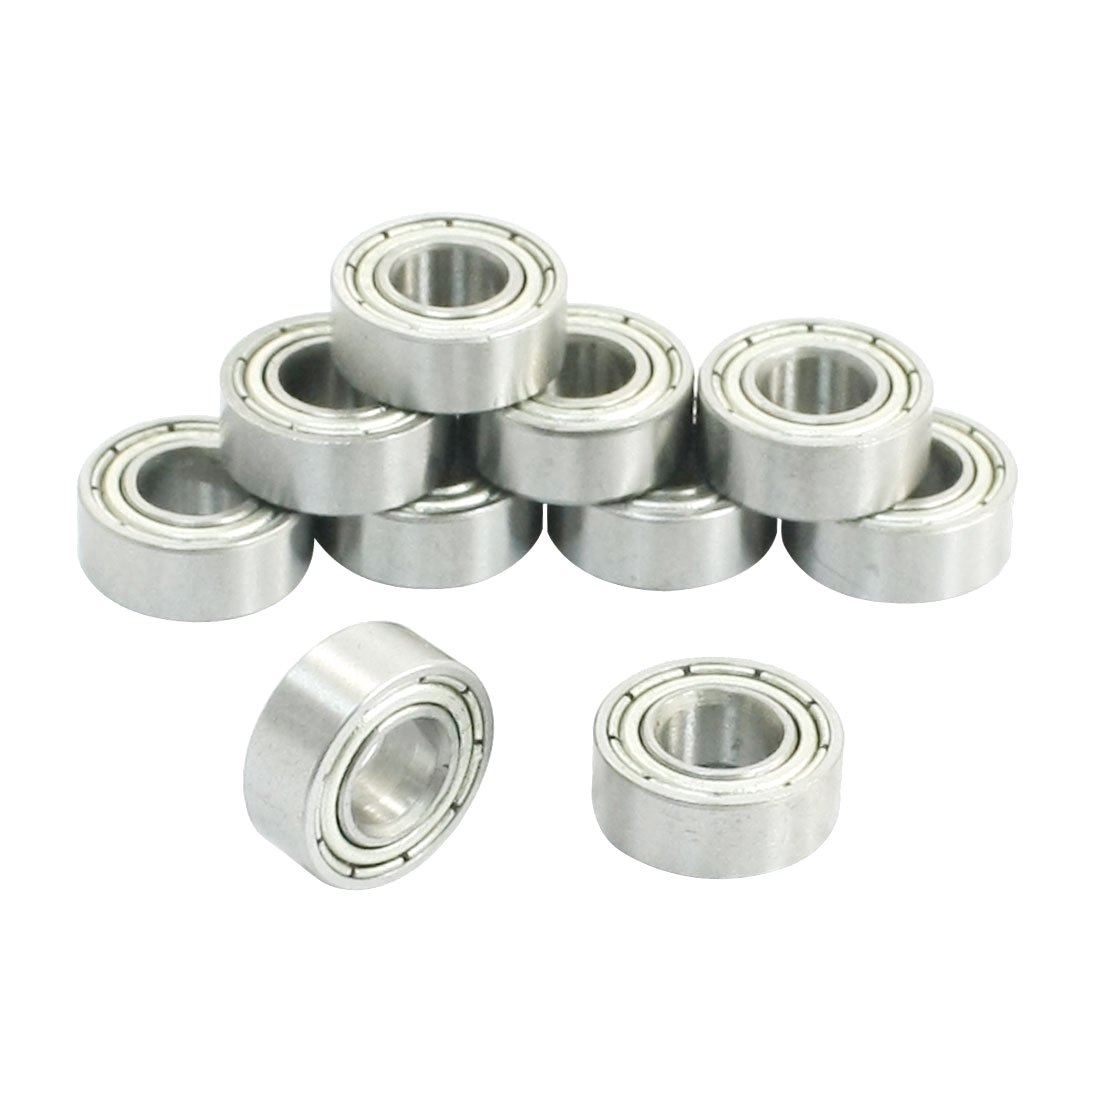 Deep Groove Bearings - SODIAL(R) 6mm x 13mm x 5mm Miniature Deep Groove Radial Ball Bearings 686Z 10Pcs